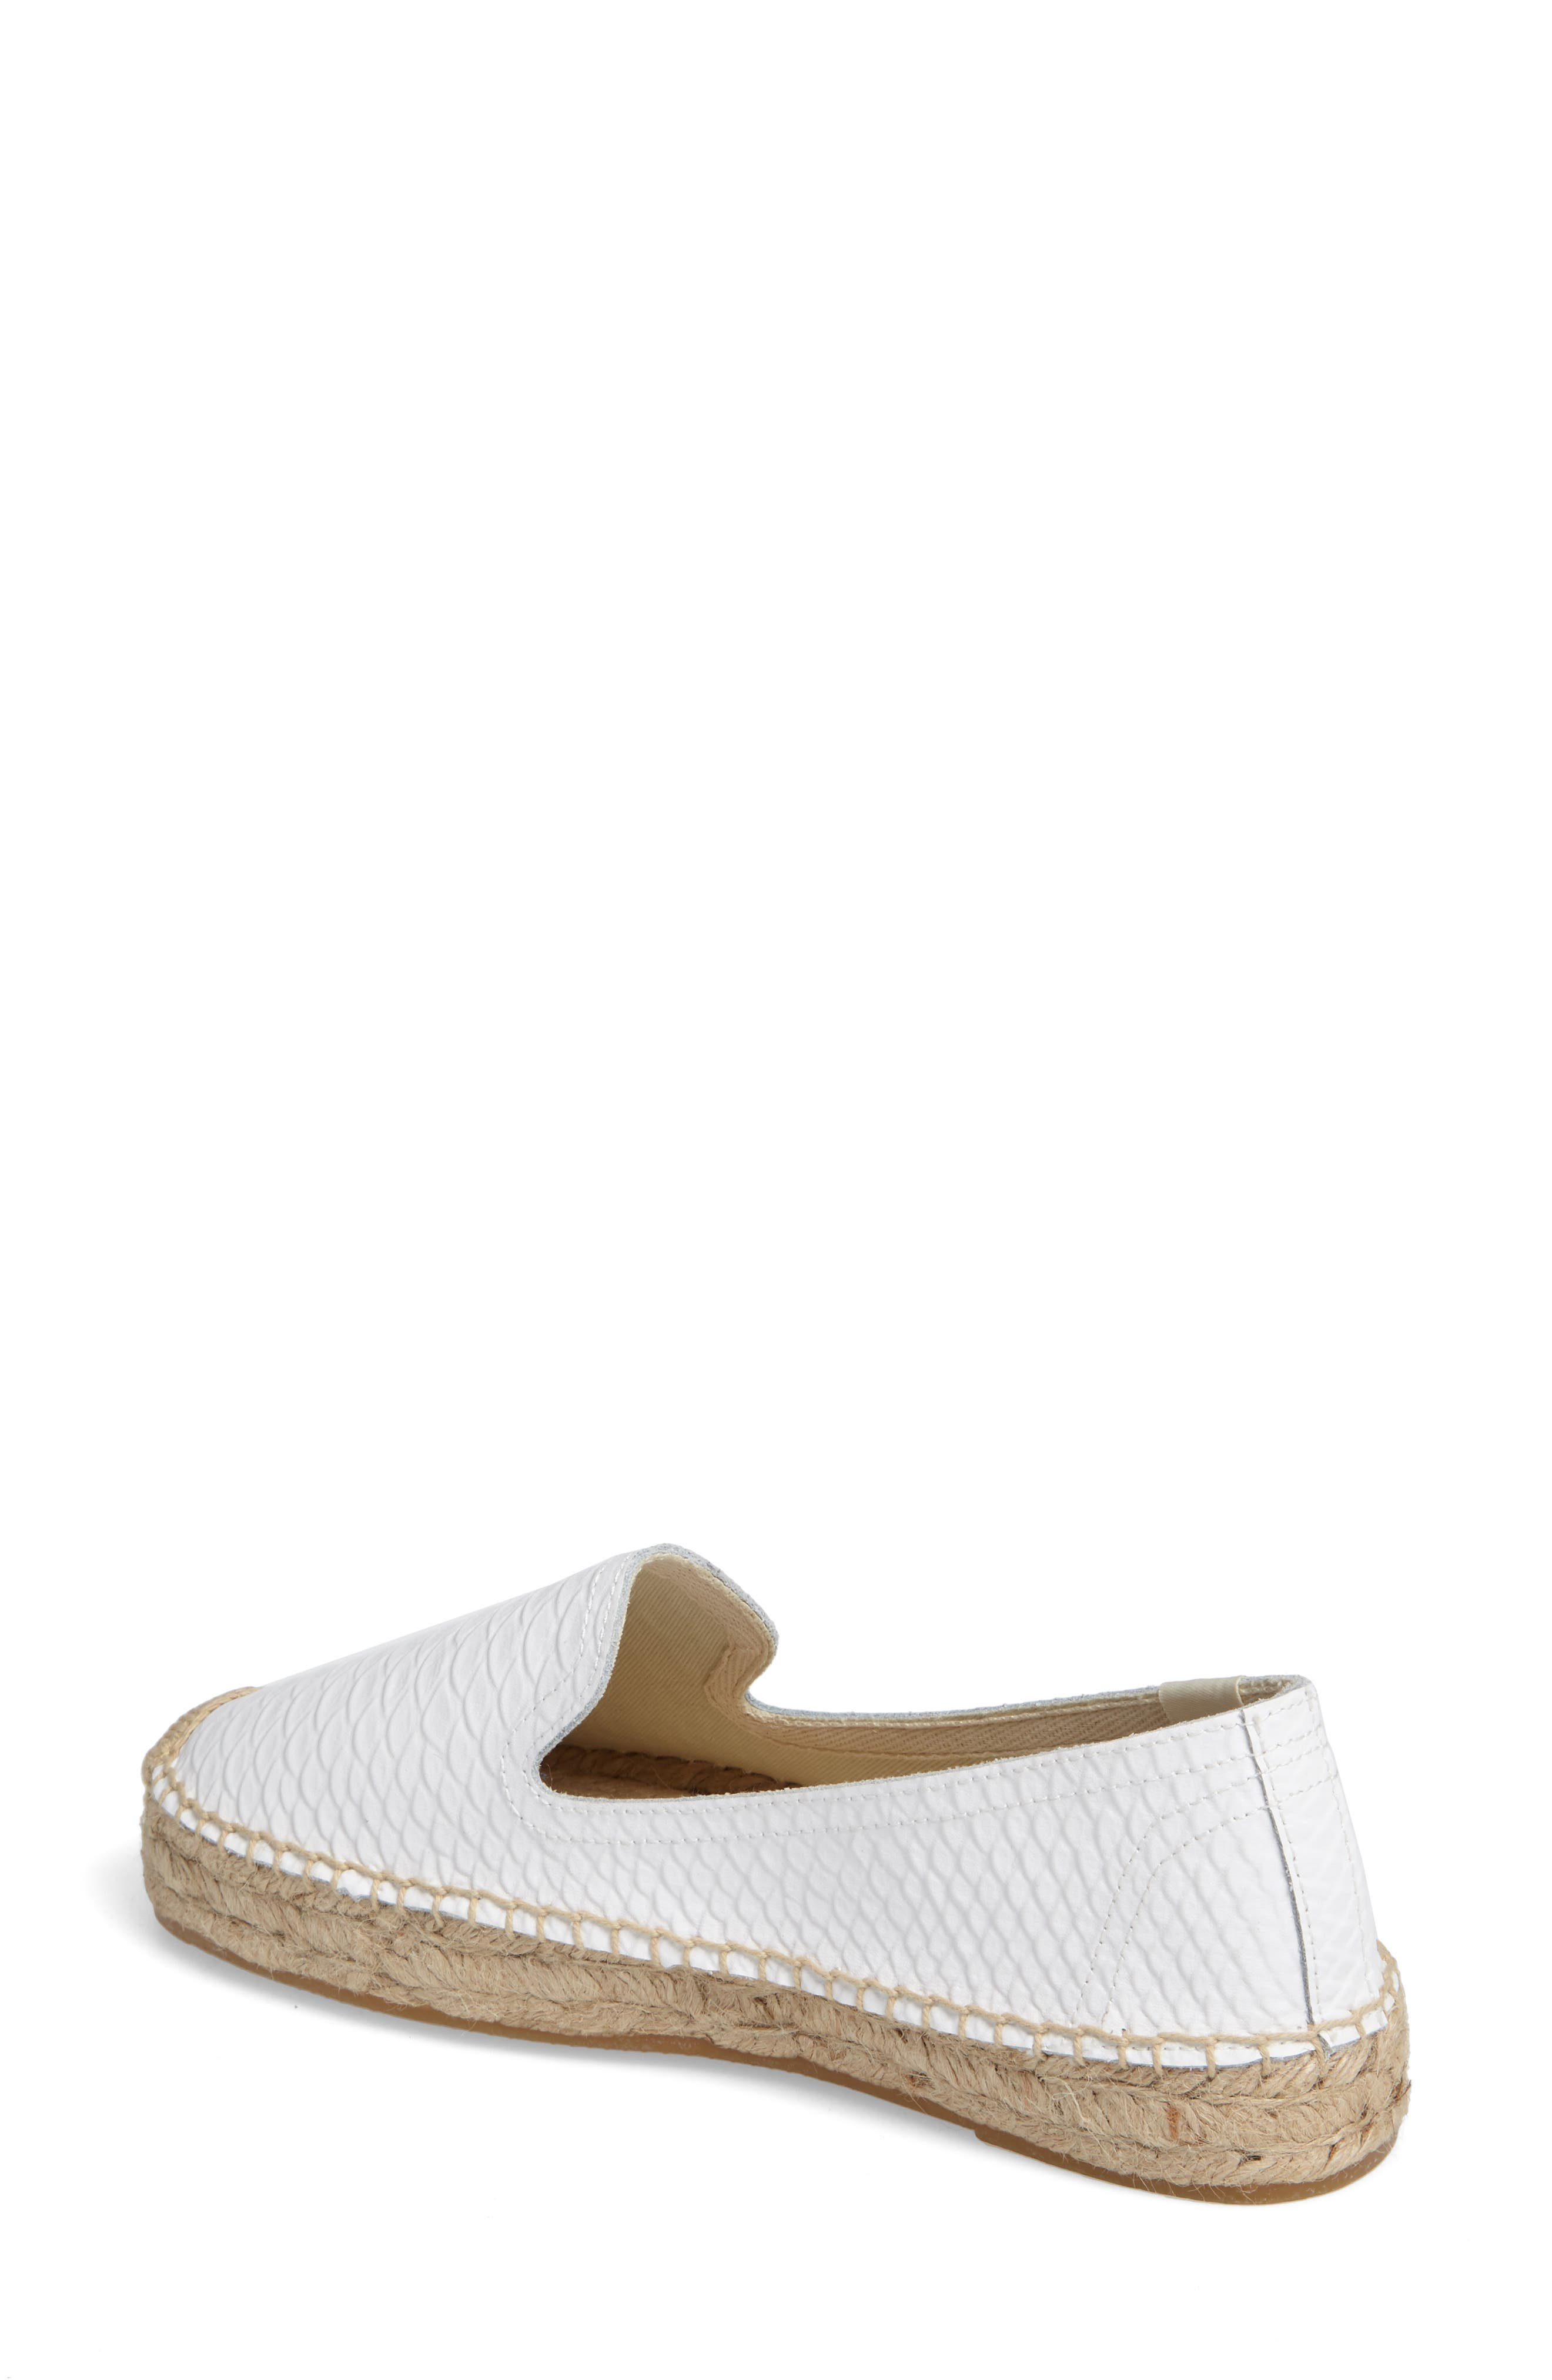 Espadrille Flat,                             Alternate thumbnail 2, color,                             White Leather